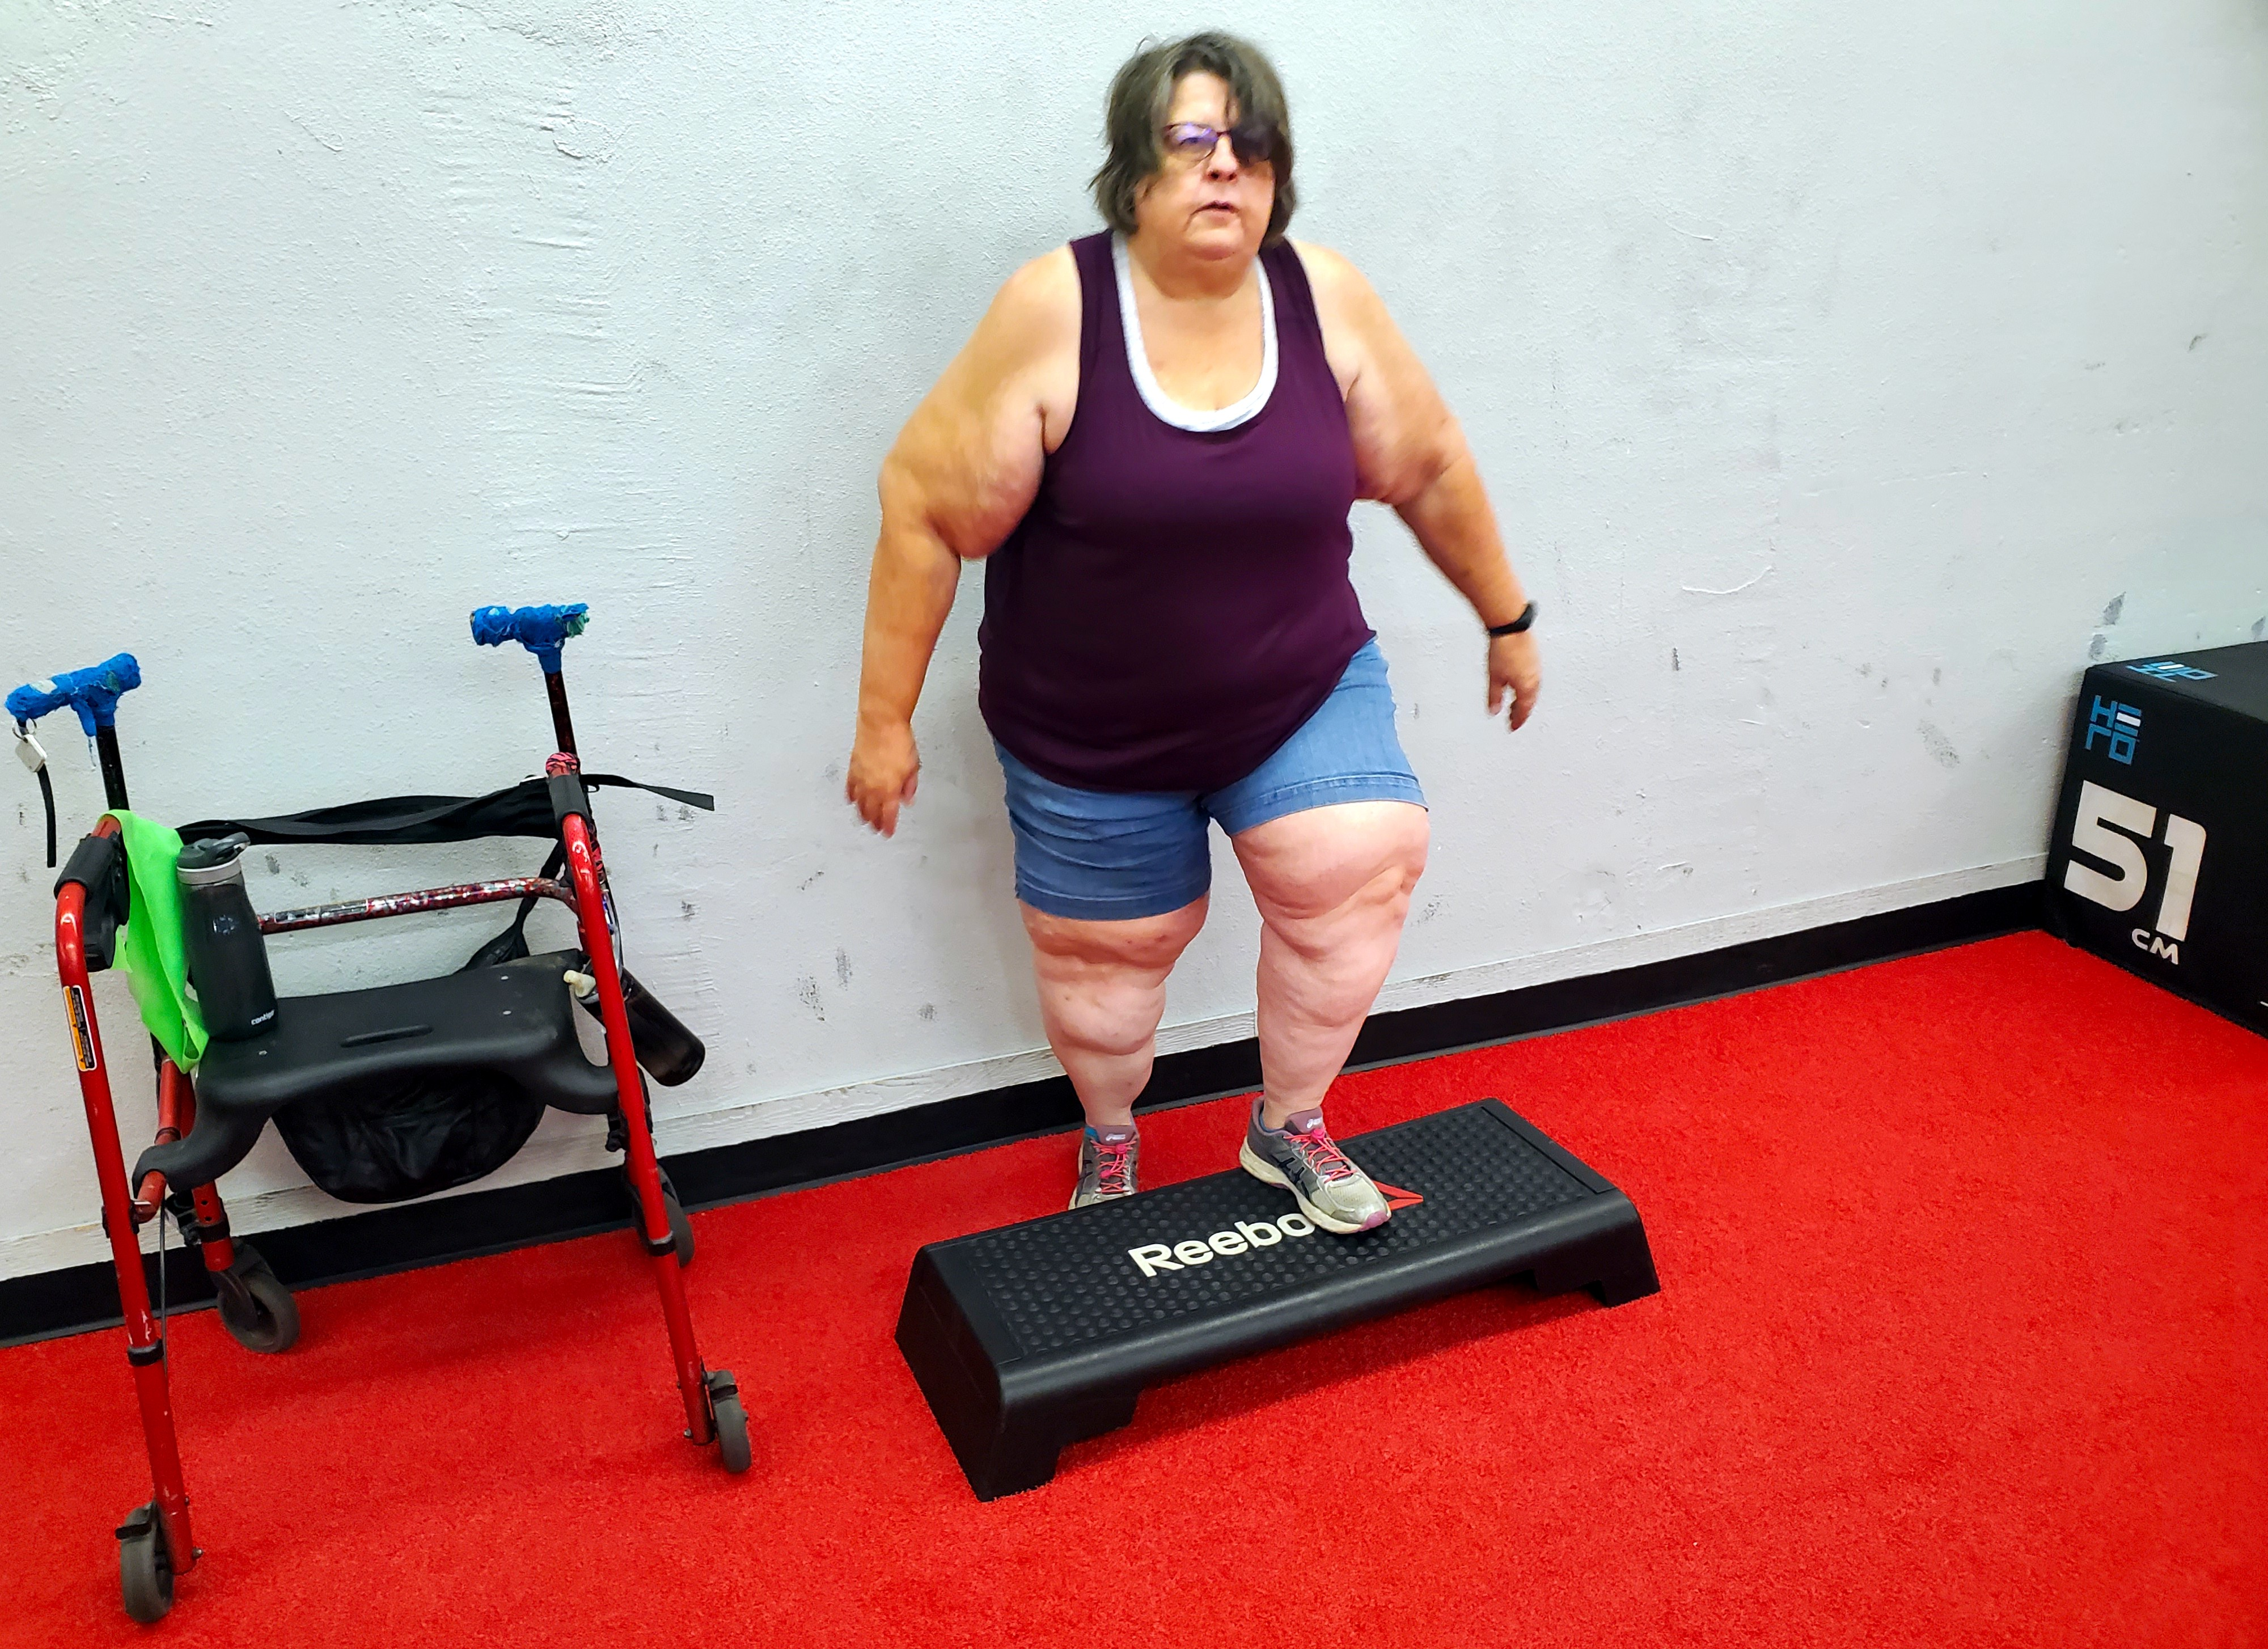 Older fat woman wearing a burgandy tank top and blue shorts stepping up on an exercise step next to a red wheeled walker